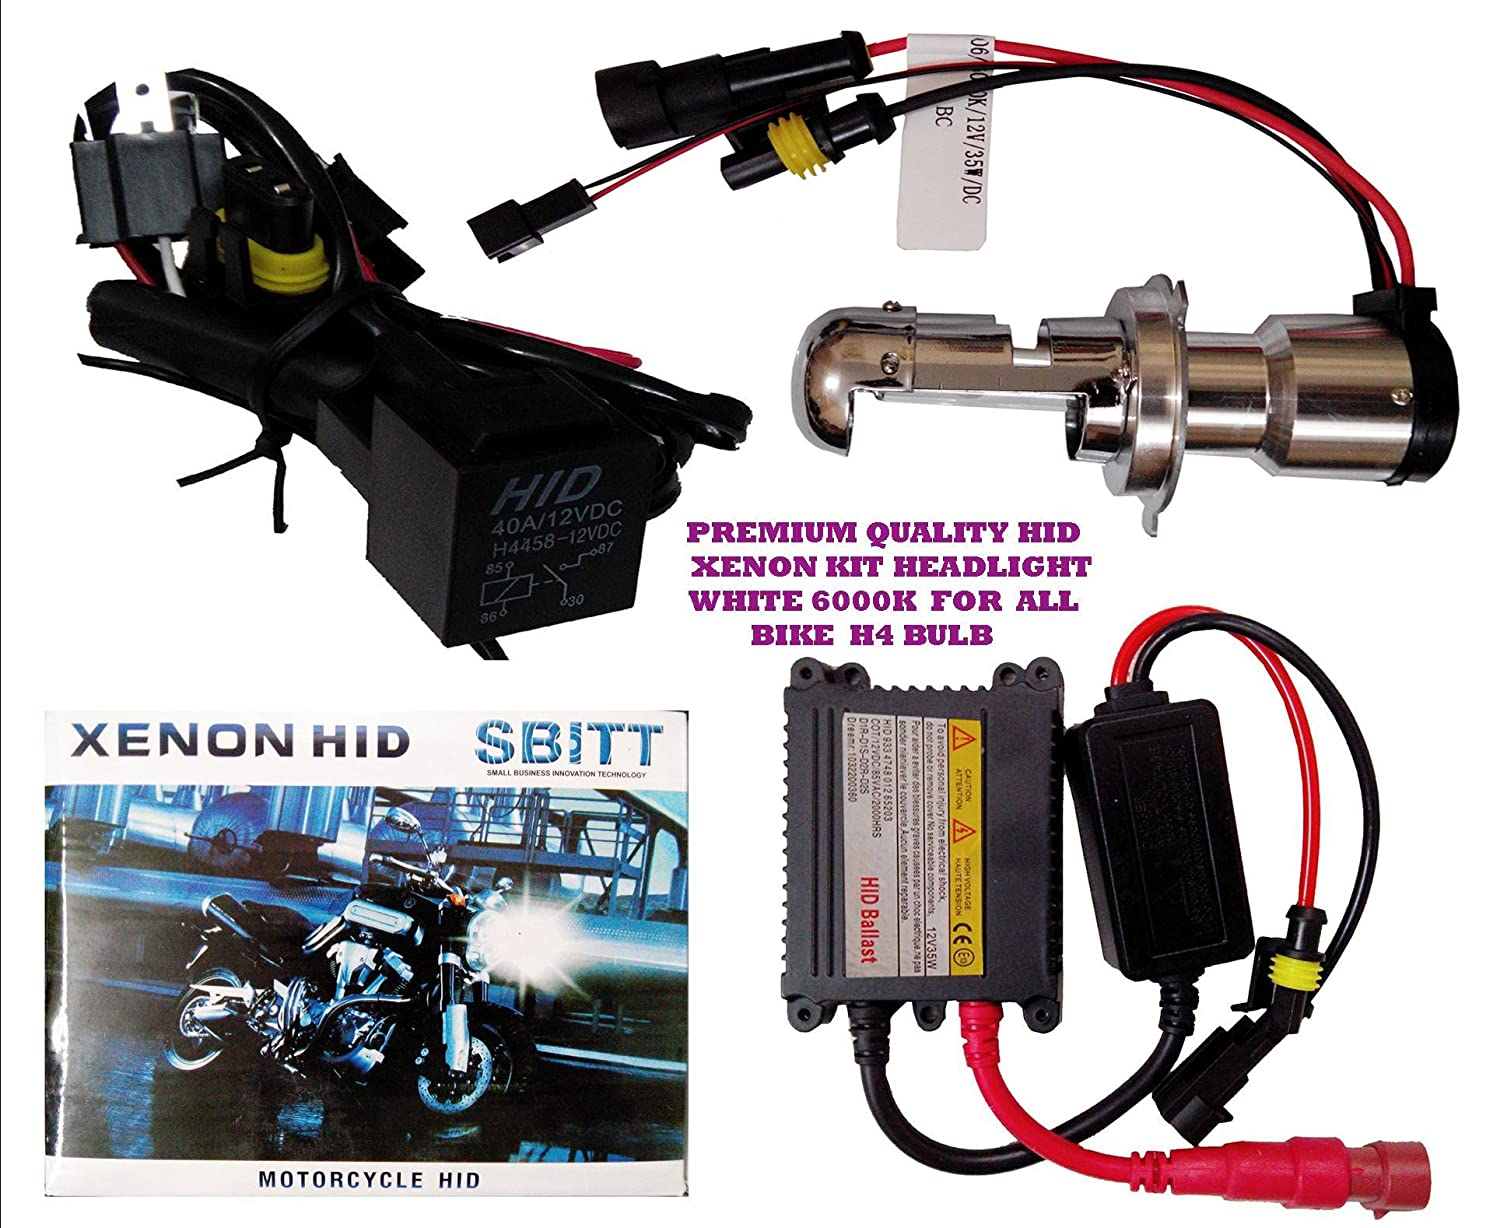 Premium Quality H4 Hid Xenon Headlight For All Bikes Car Wiring Diagram Motorcycle Motorbike